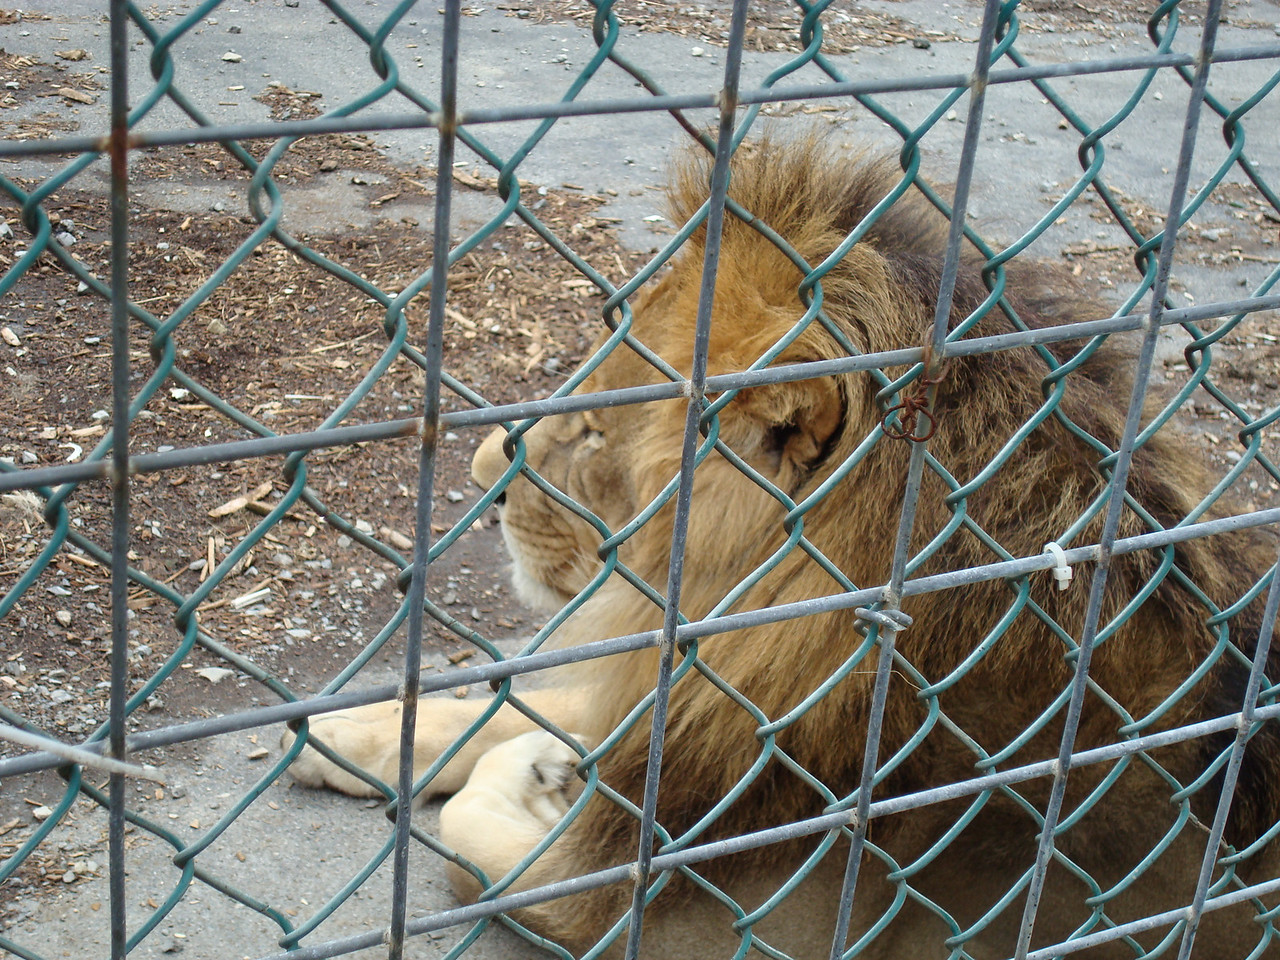 Tri-State Zoological Park